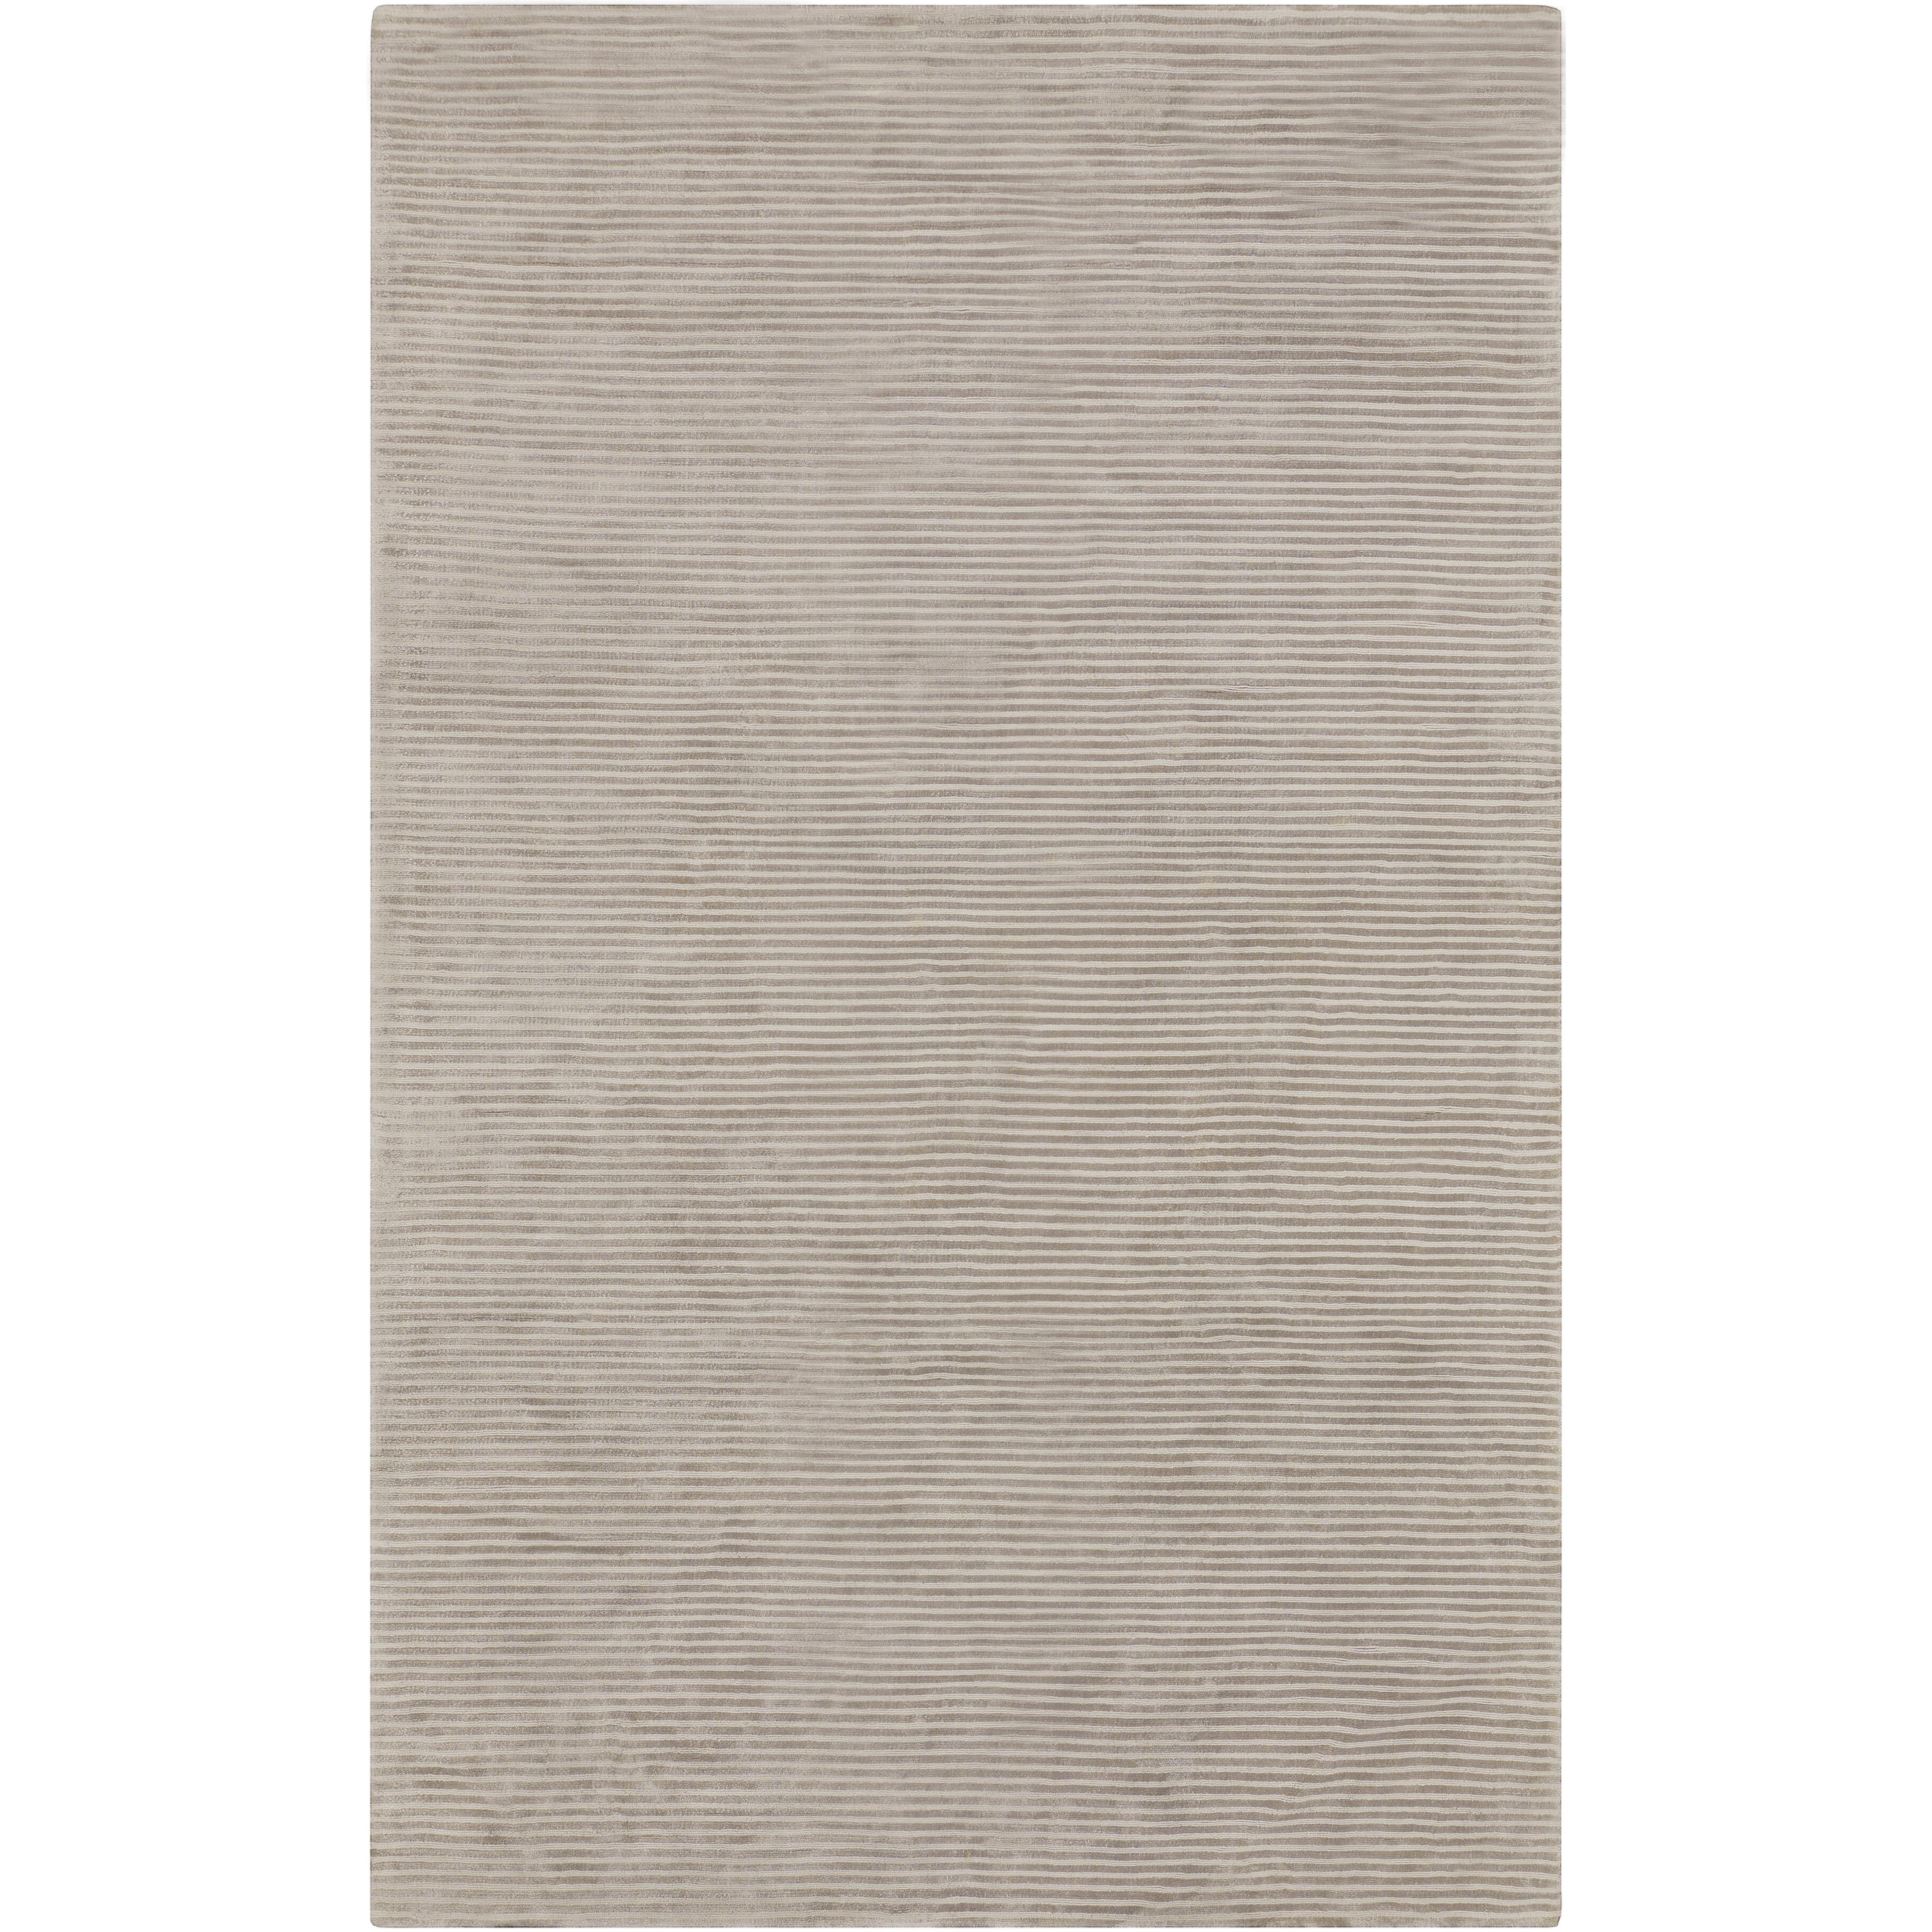 "Surya Graphite 3'3"" x 5'3"" - Item Number: GPH50-3353"